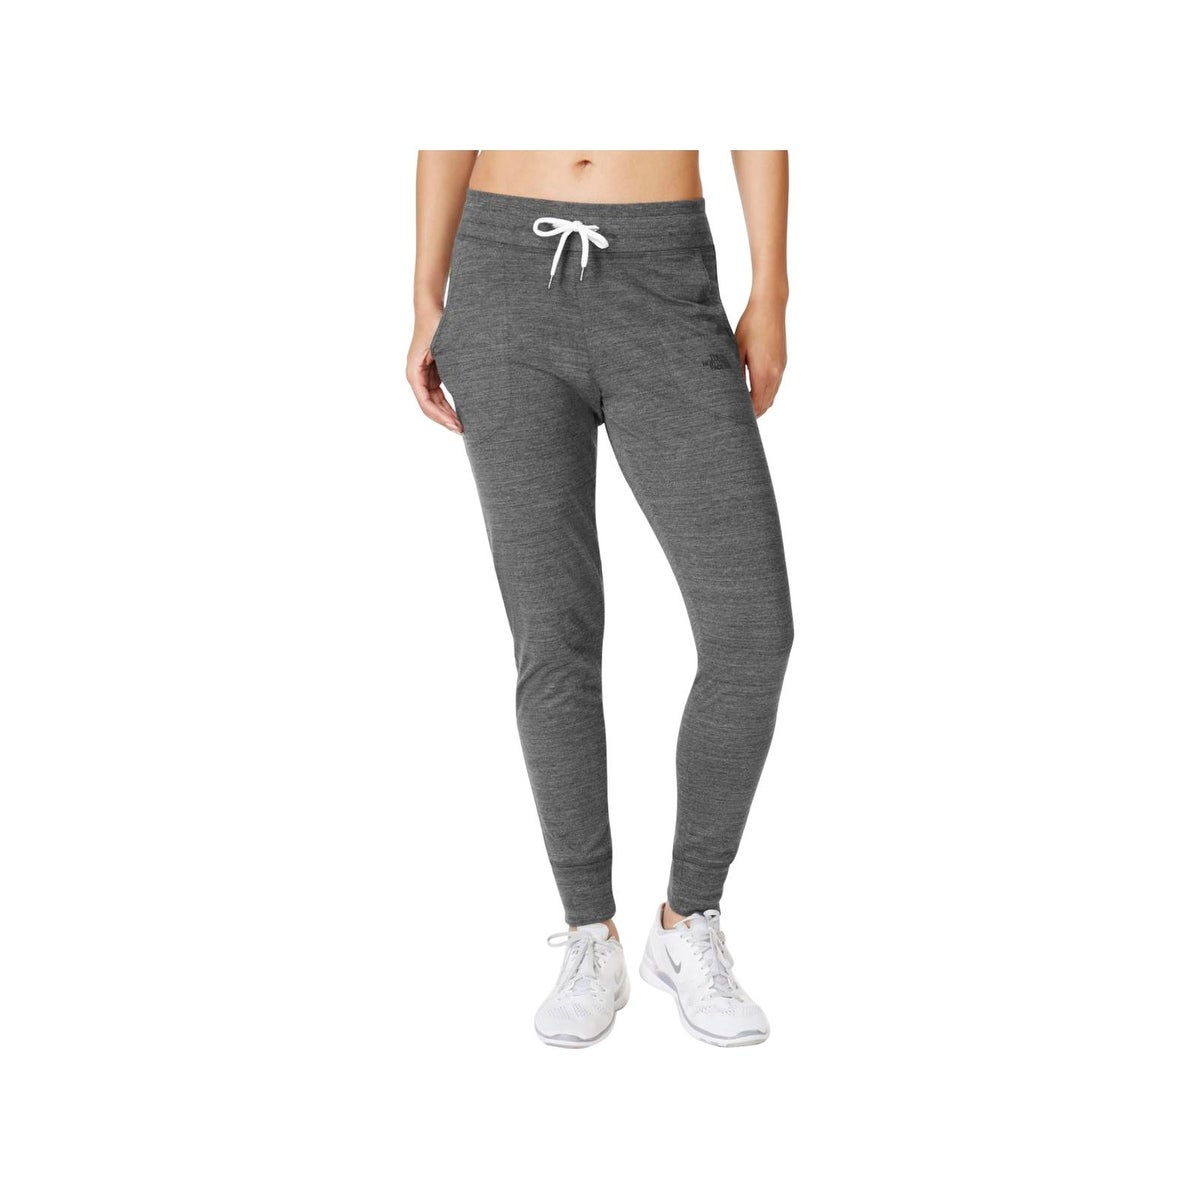 19e0366da The North Face Womens Sweatpants Jersey Lightweight - S